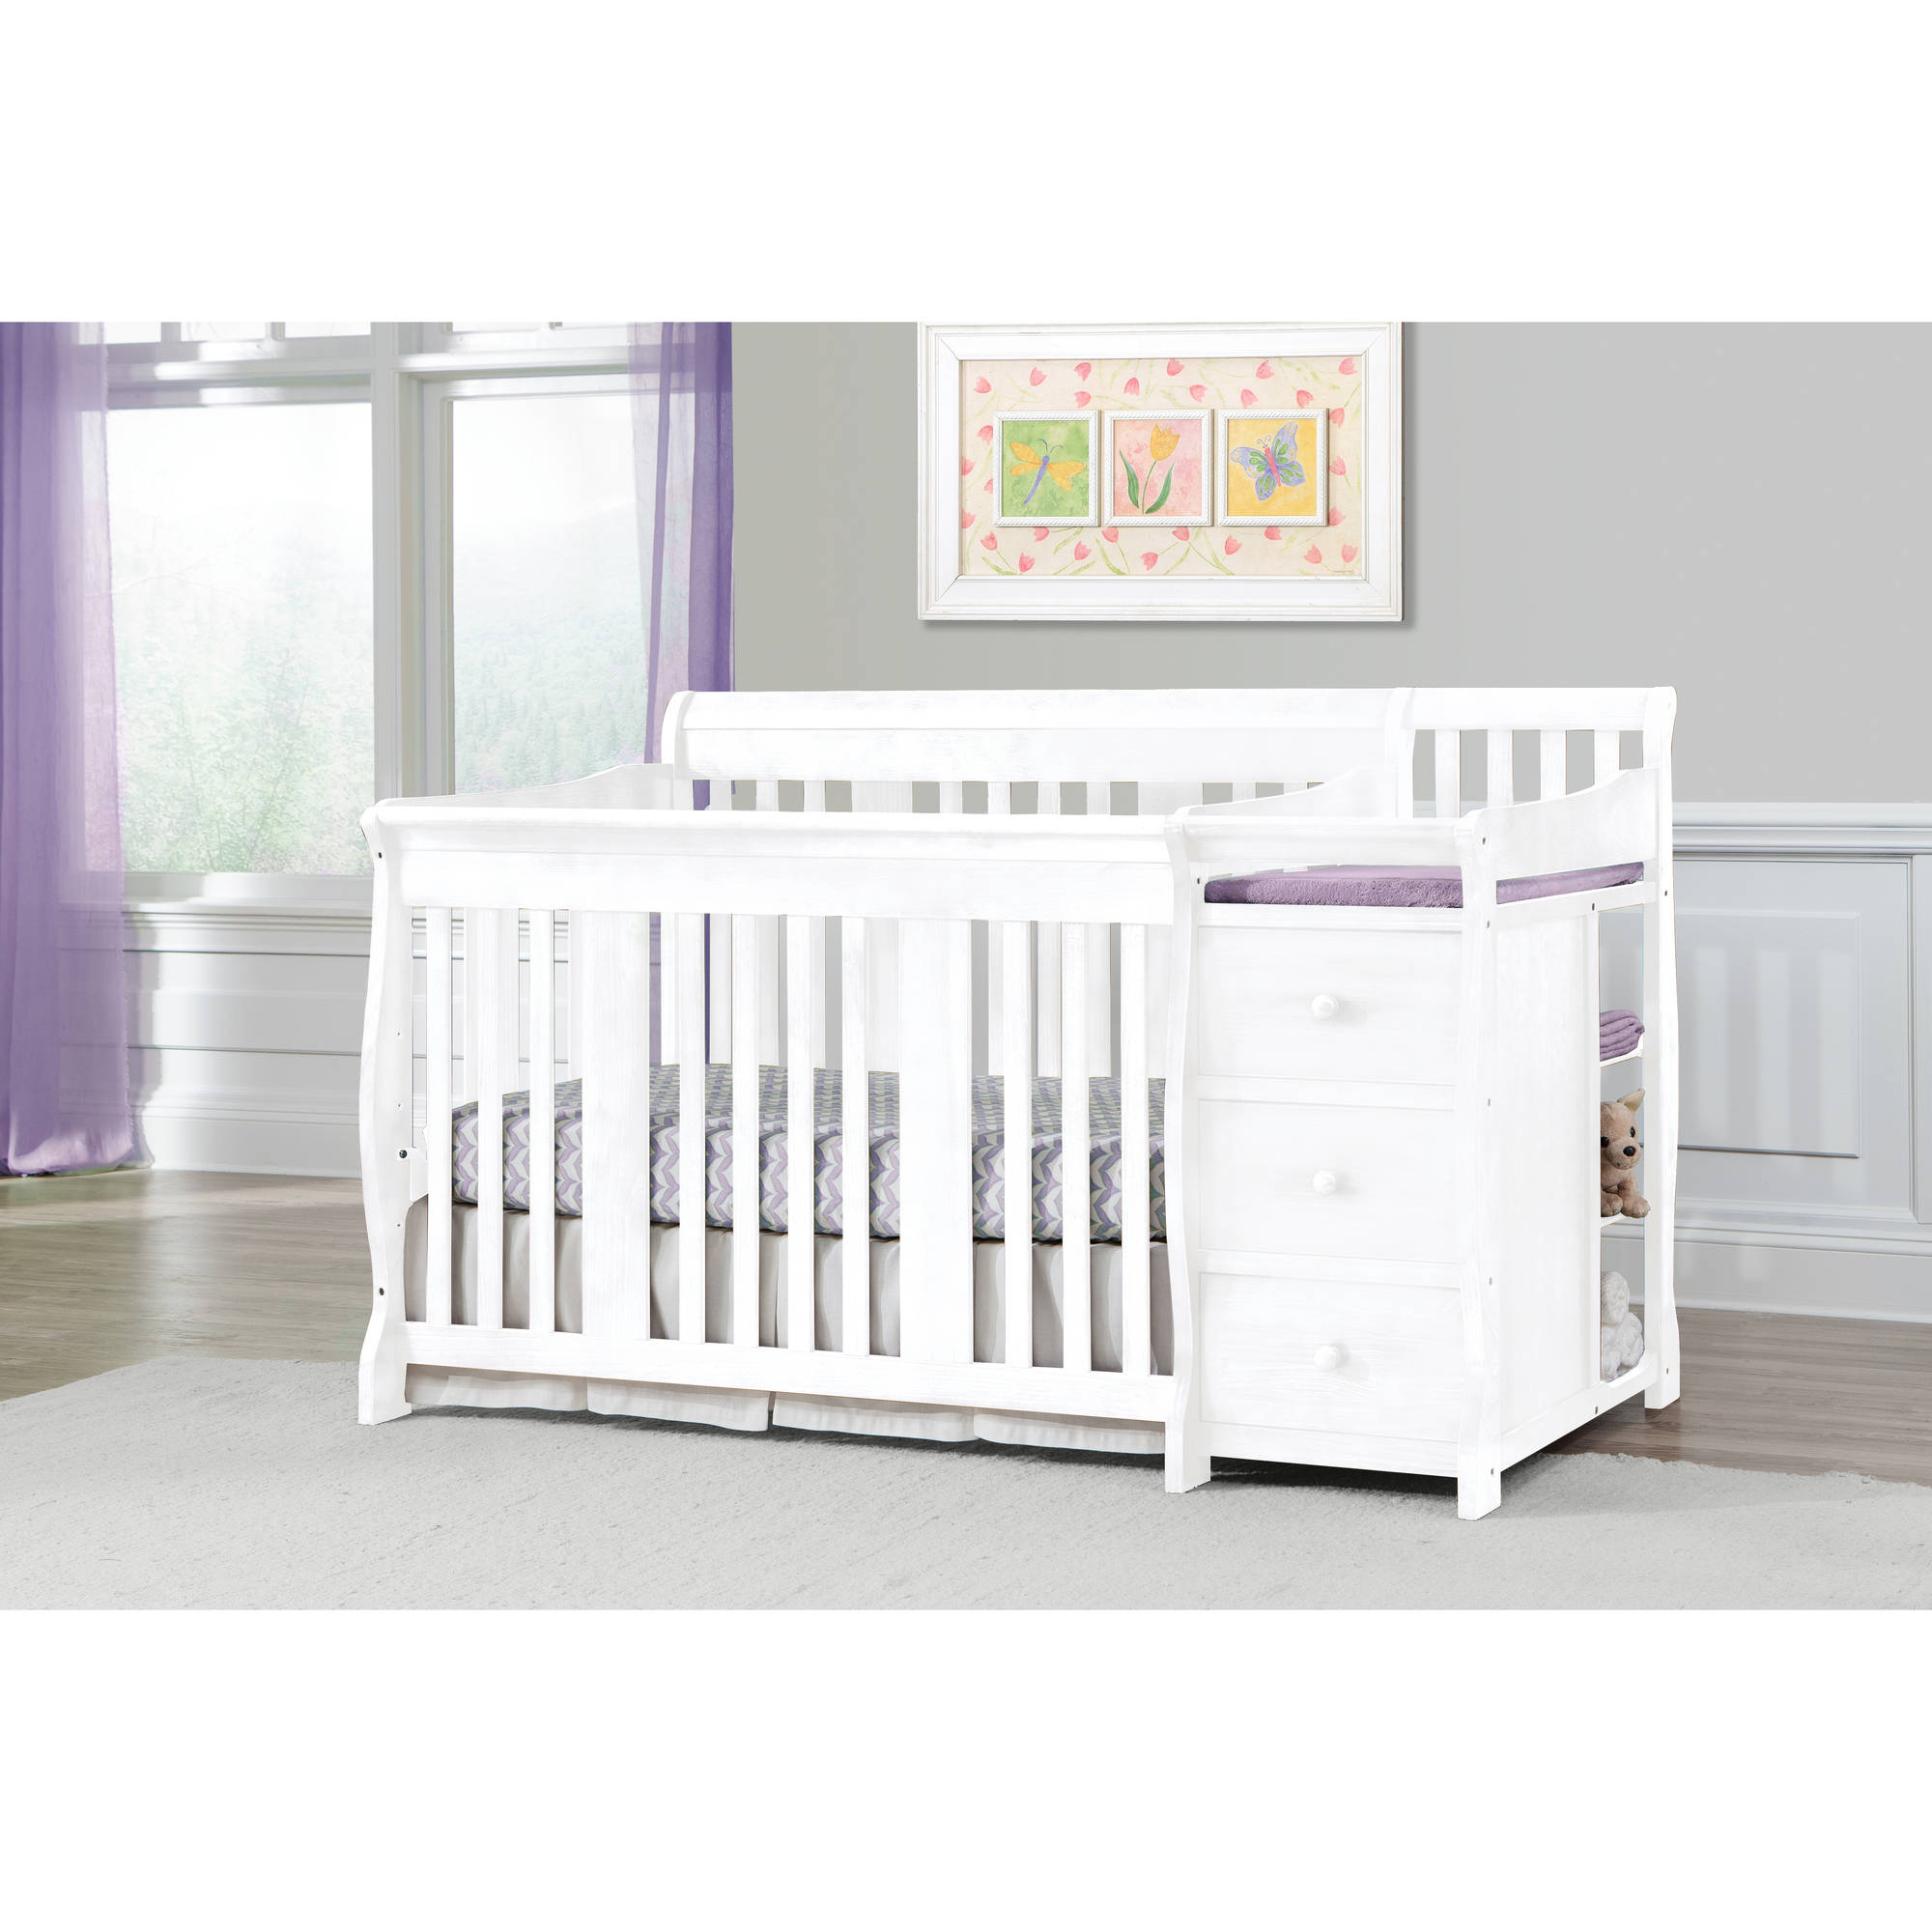 Storkcraft Portofino Convertible Crib and Changer, White